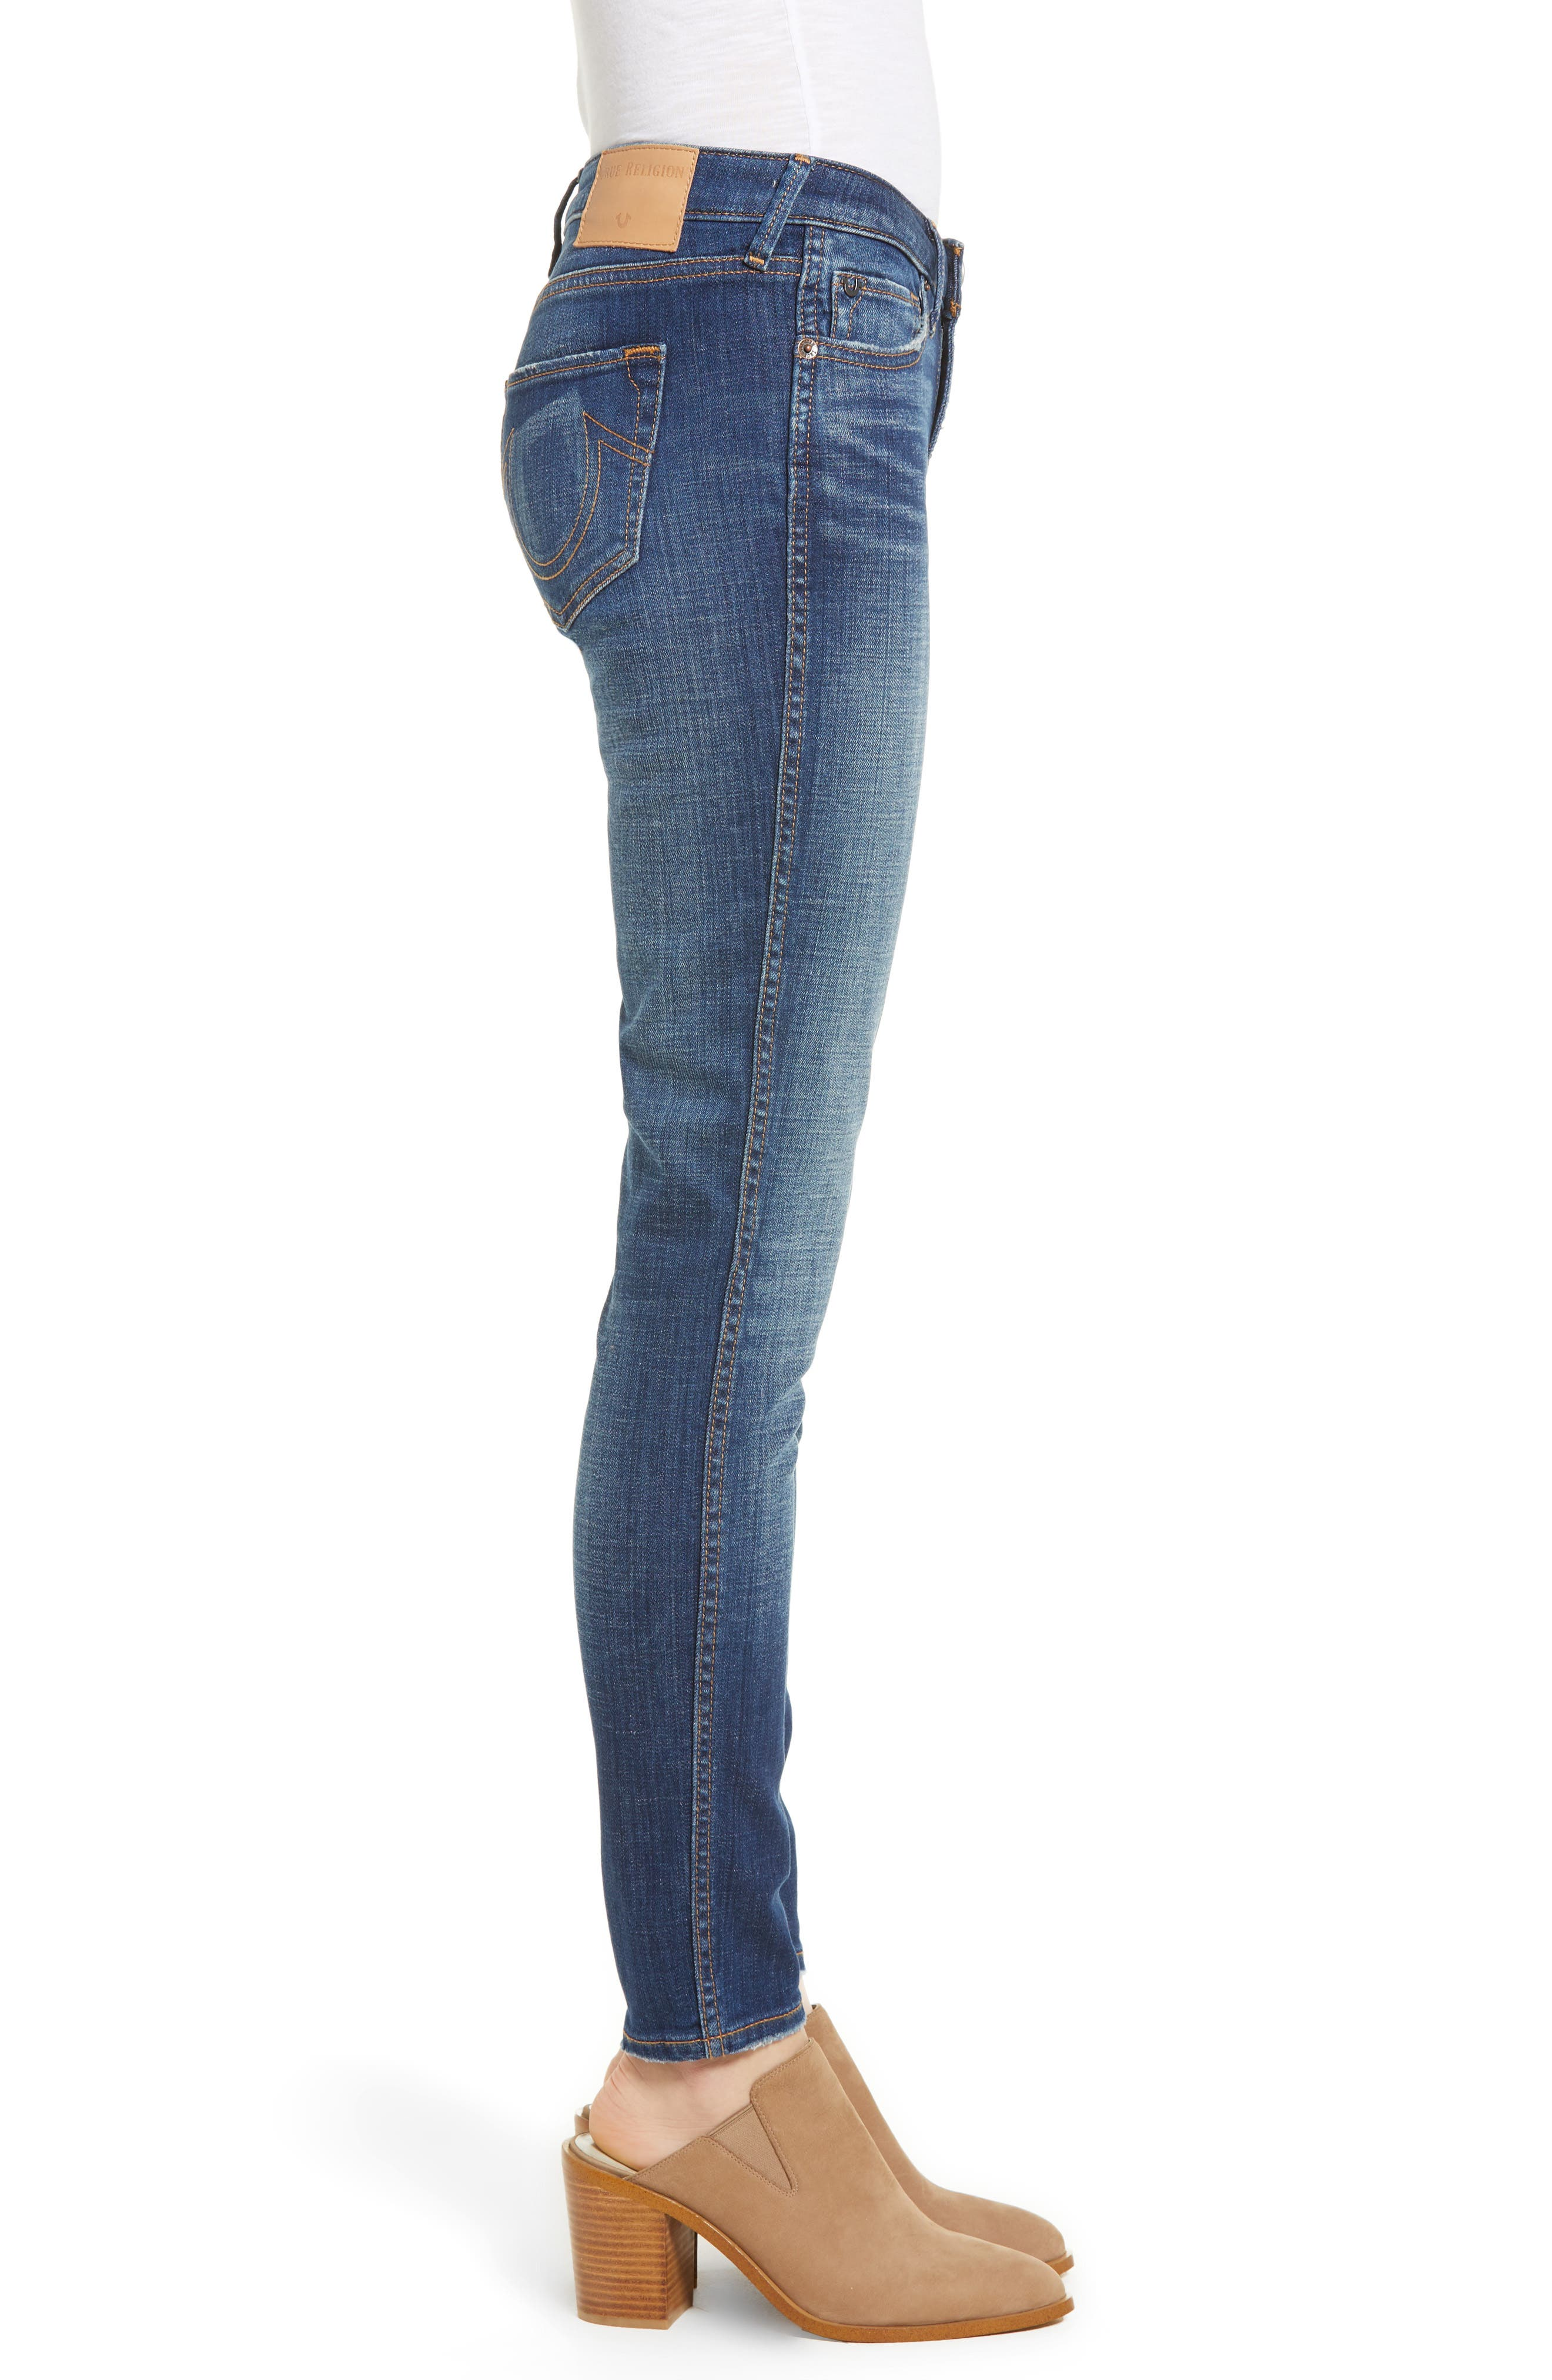 Halle Mid Rise Super Skinny Jeans,                             Alternate thumbnail 3, color,                             401